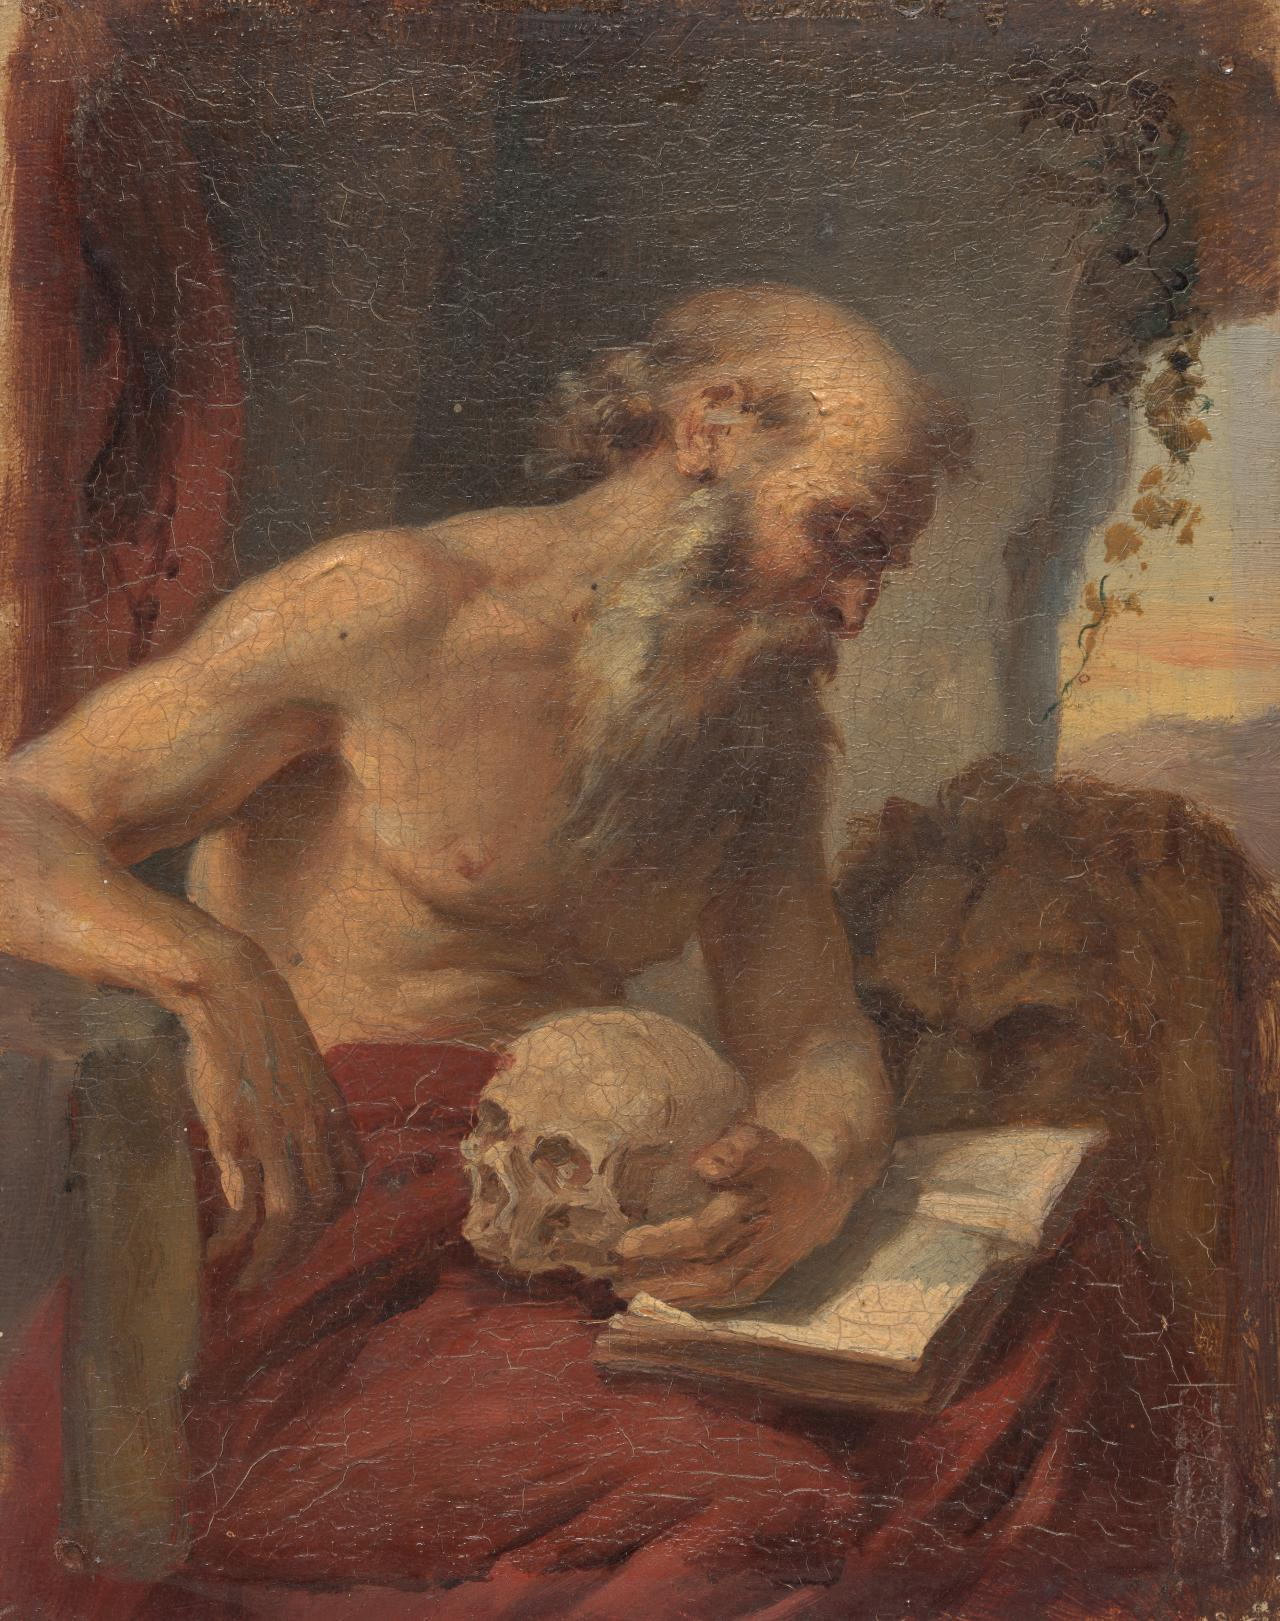 (Saint Jerome)